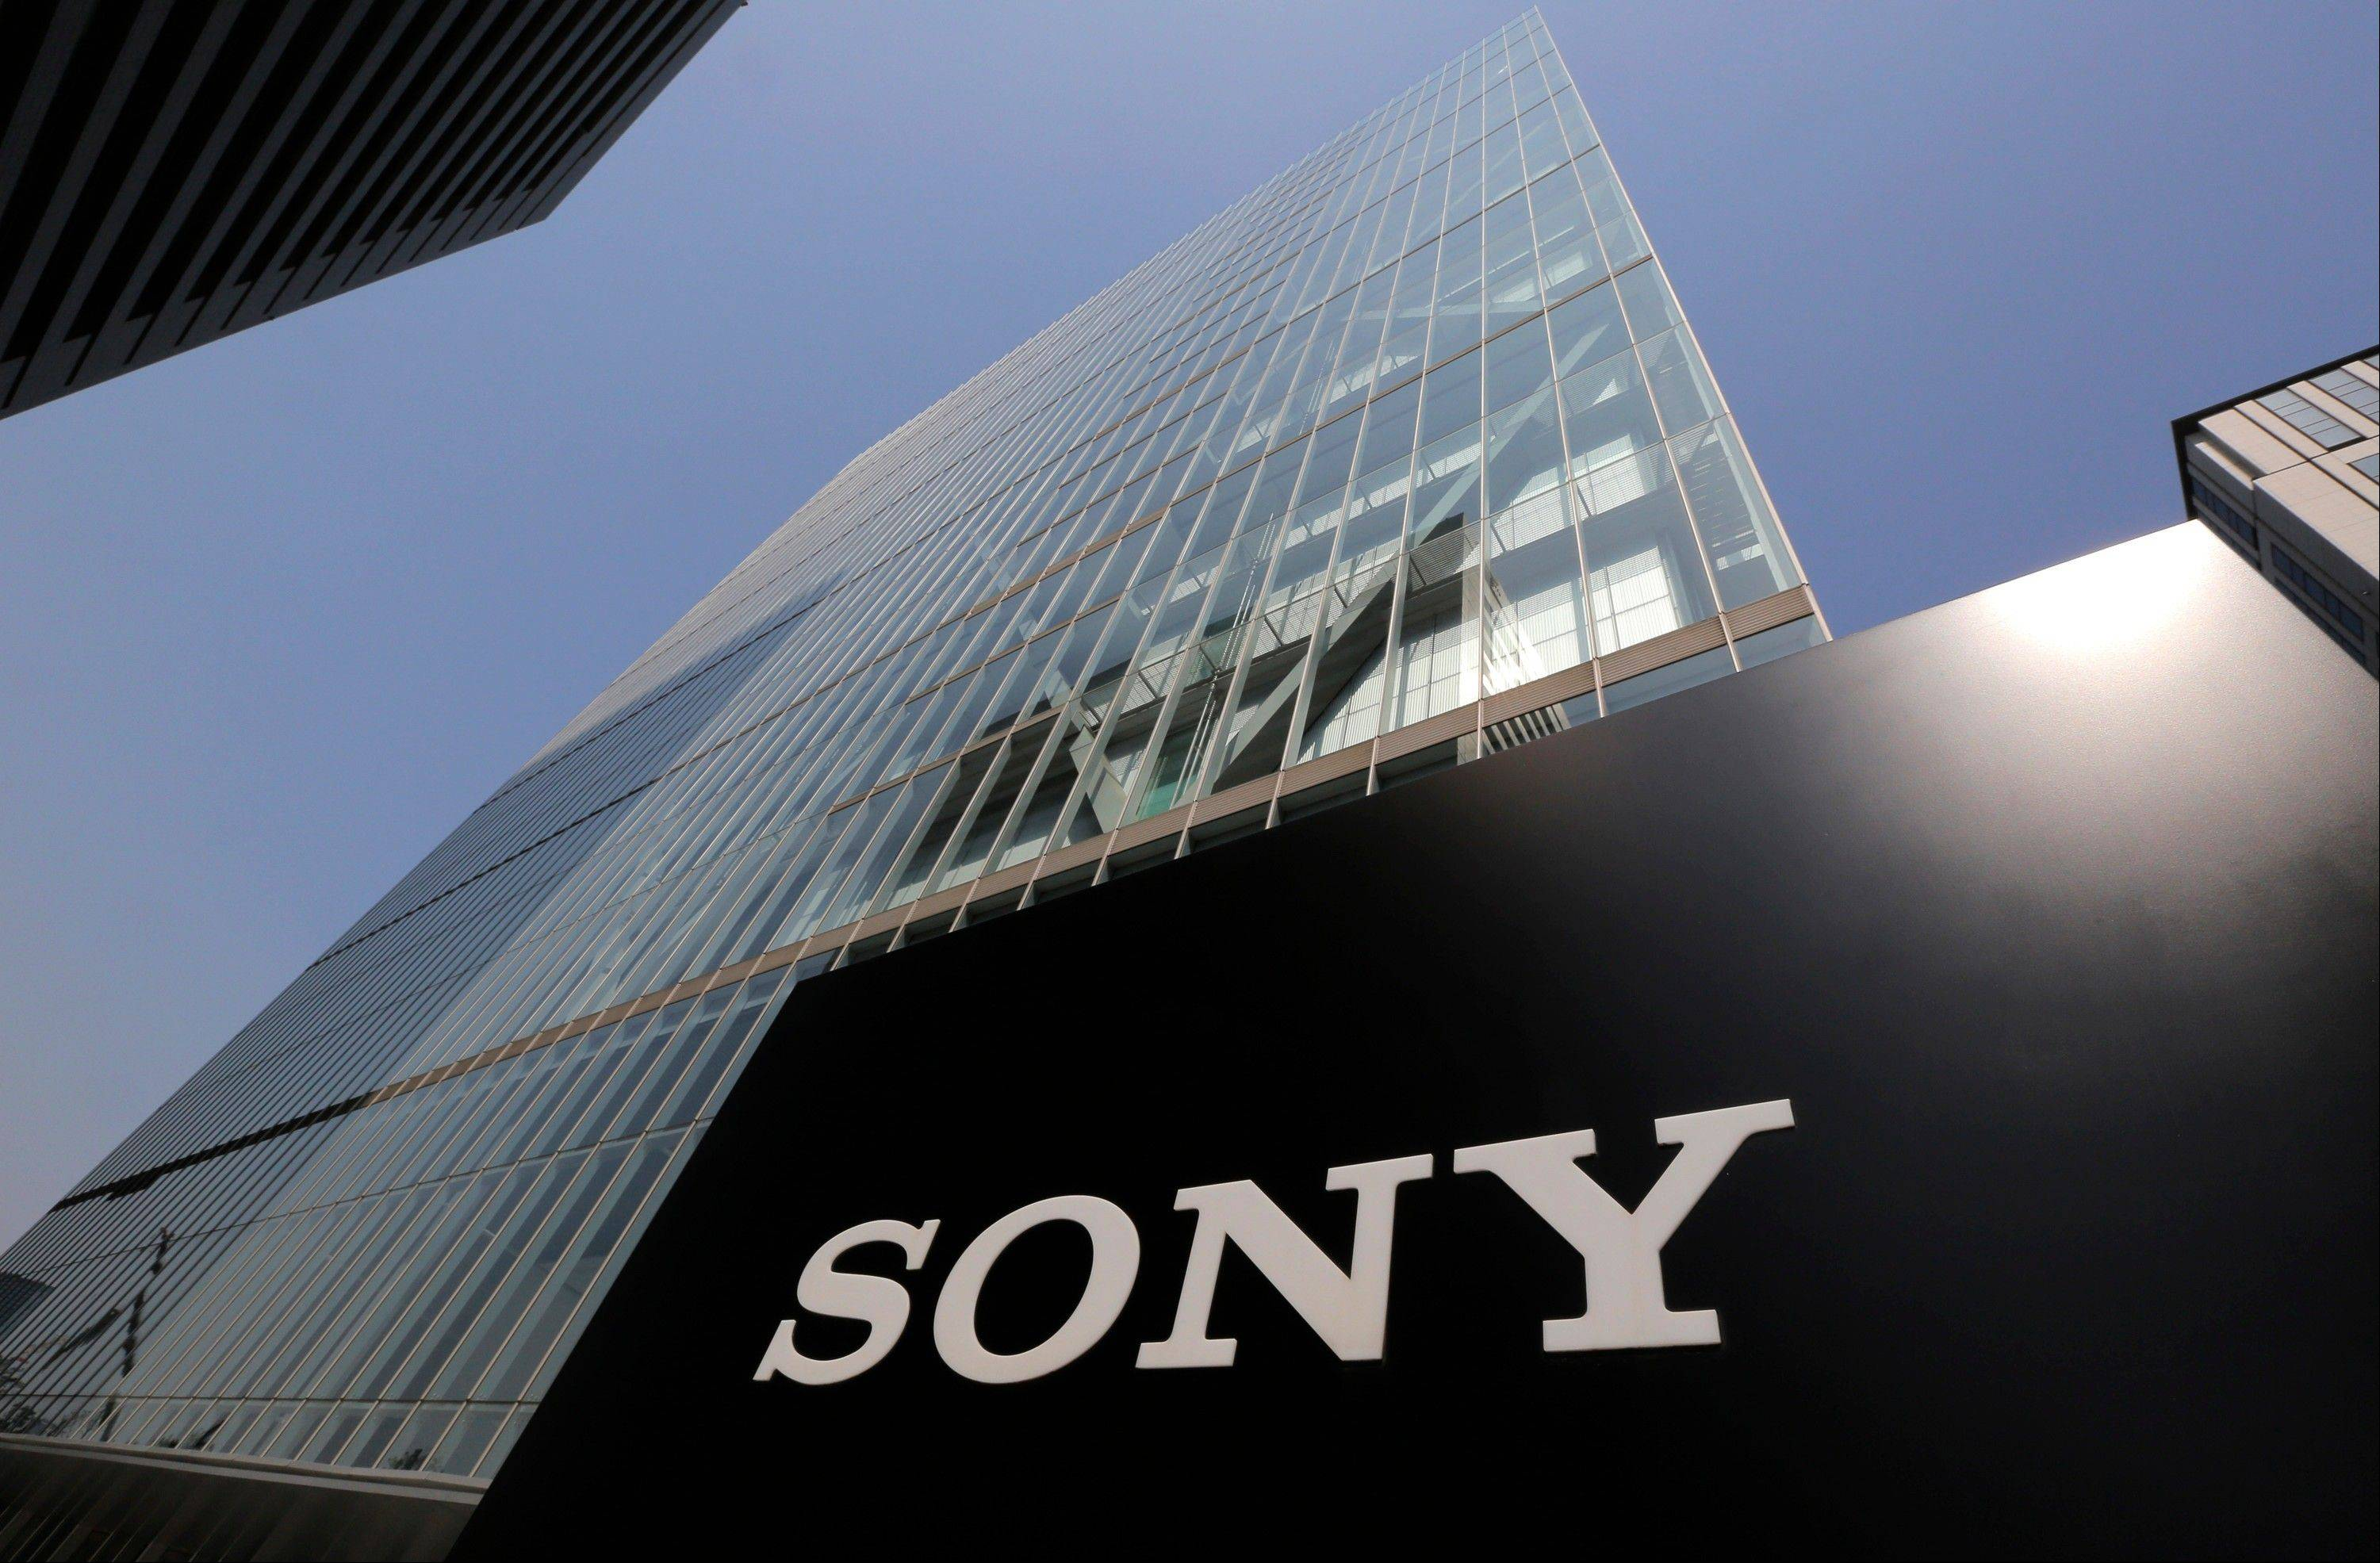 Electronics and entertainment giant Sony Corp. is reporting a 19.3 billion yen ($196 million) loss for the latest quarter on weakness in its movies division.